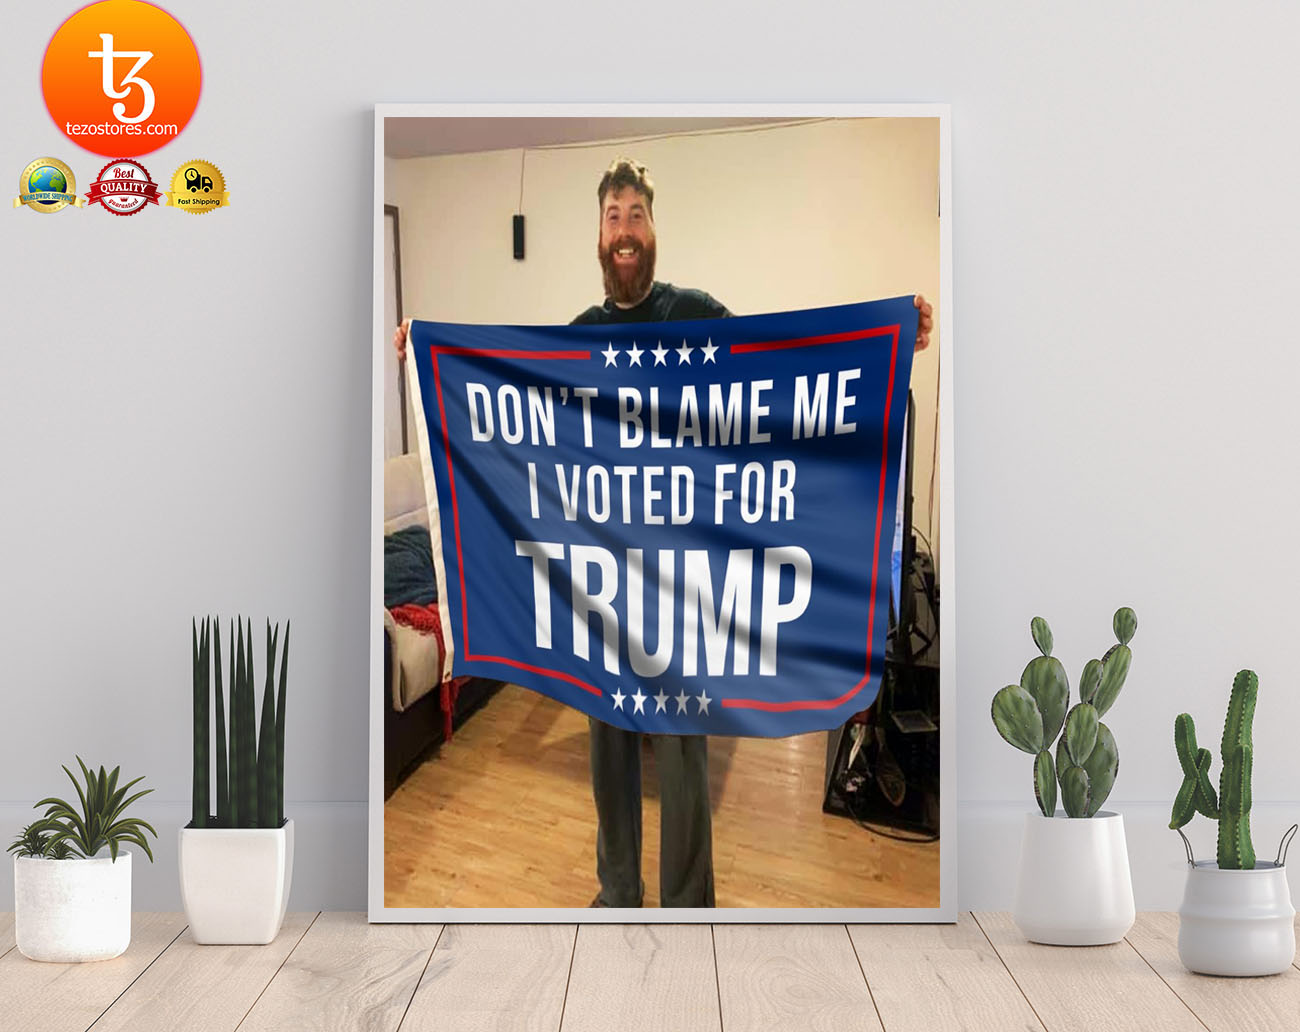 Don't blame me I voted for Trump flag 21